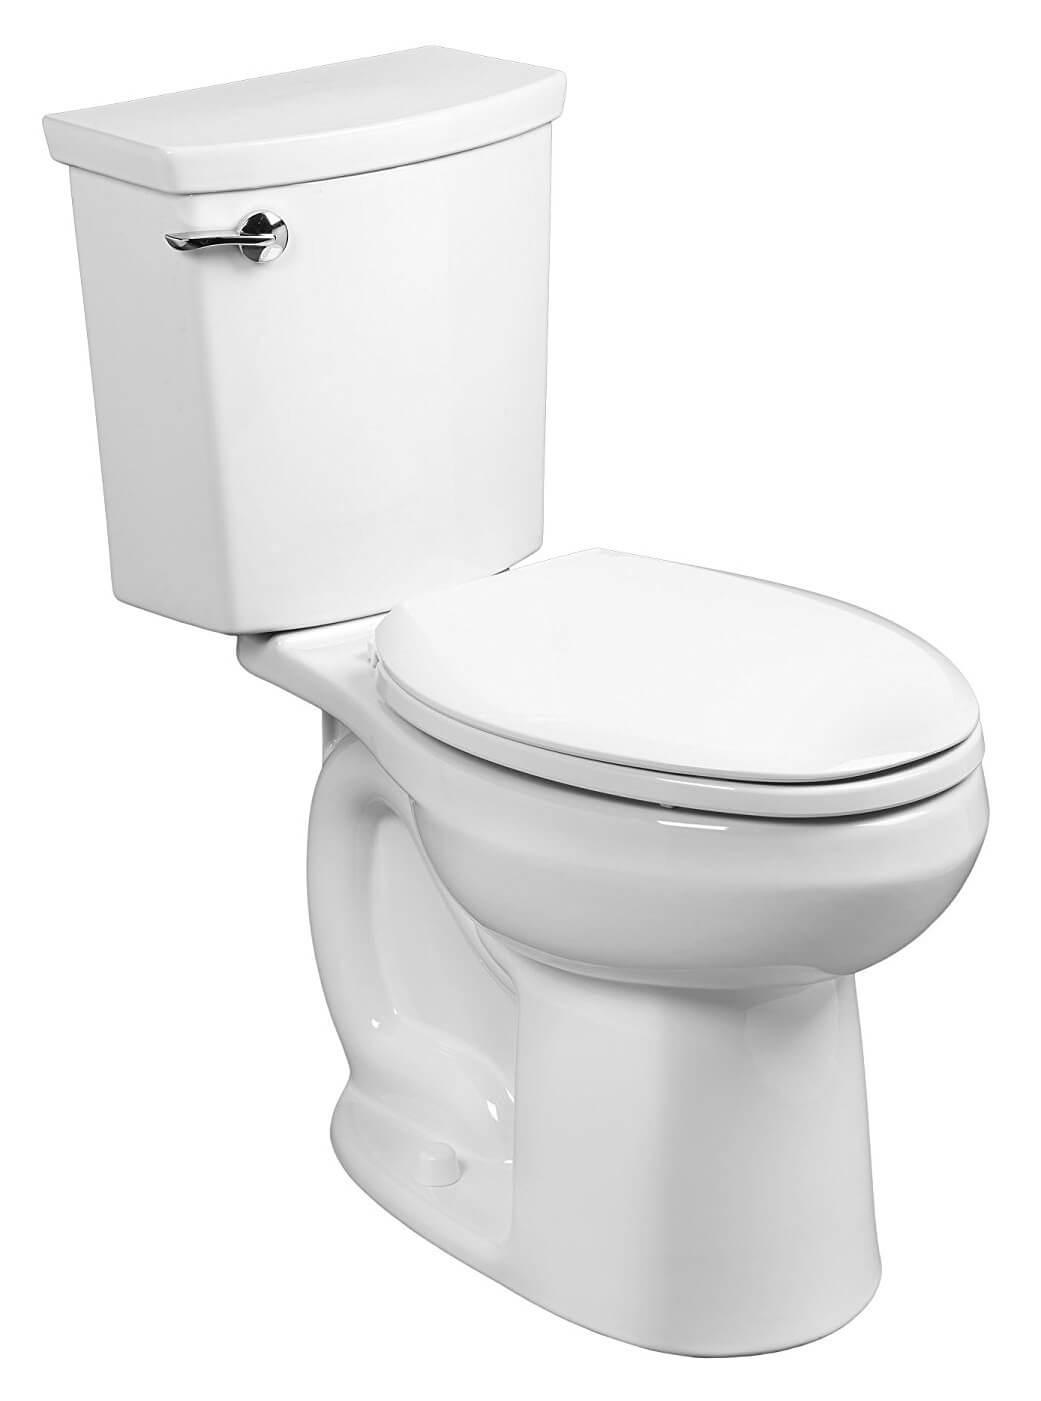 Best American Standard Toilet with Ultimate Buying Guide | Simple Toilet